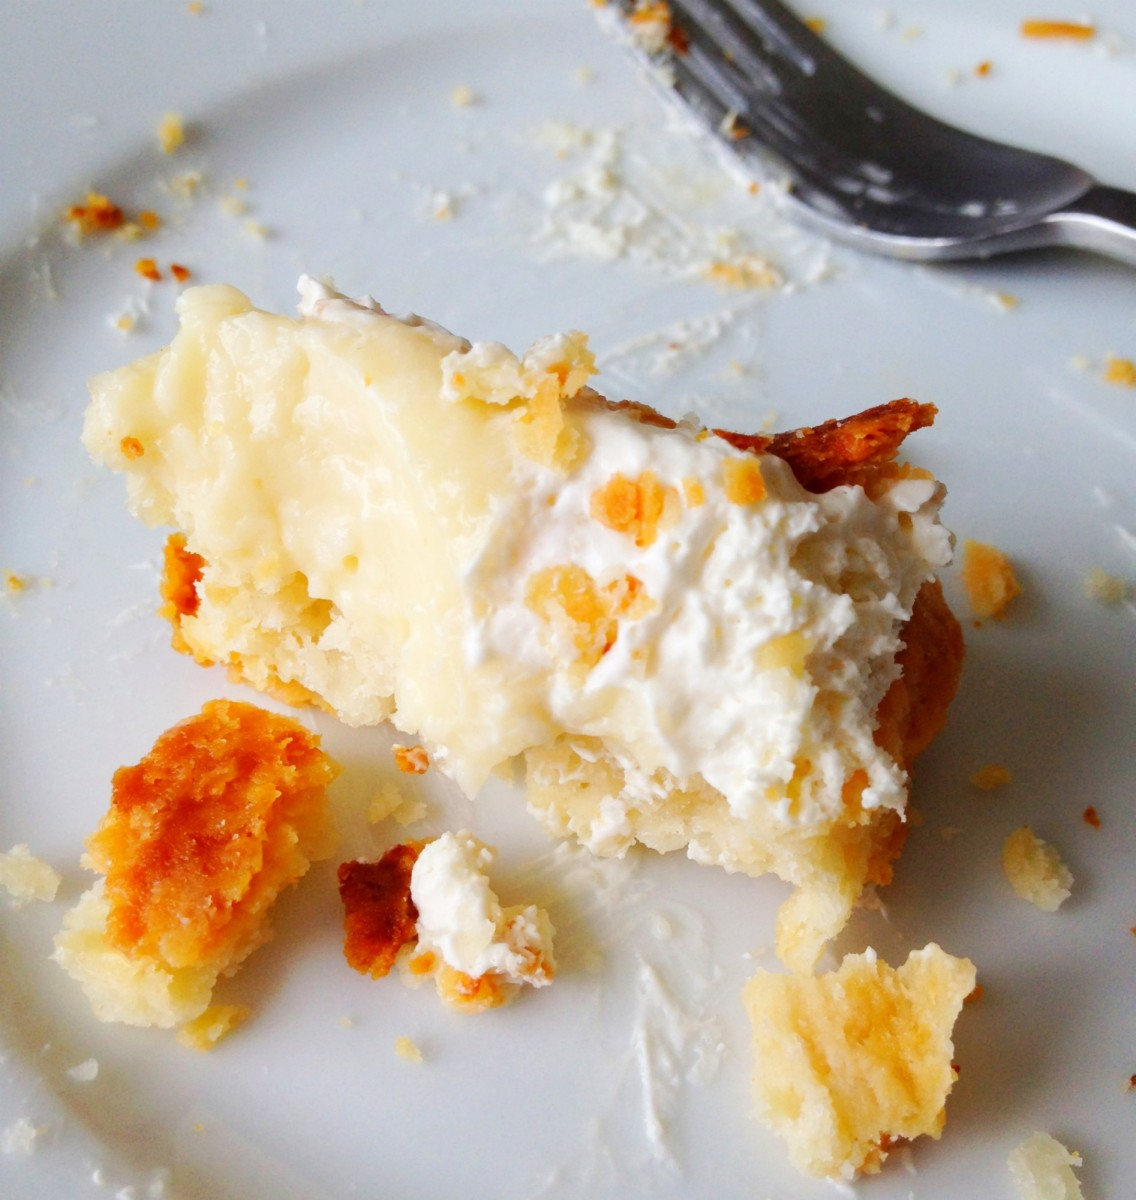 last bite of coconut pie